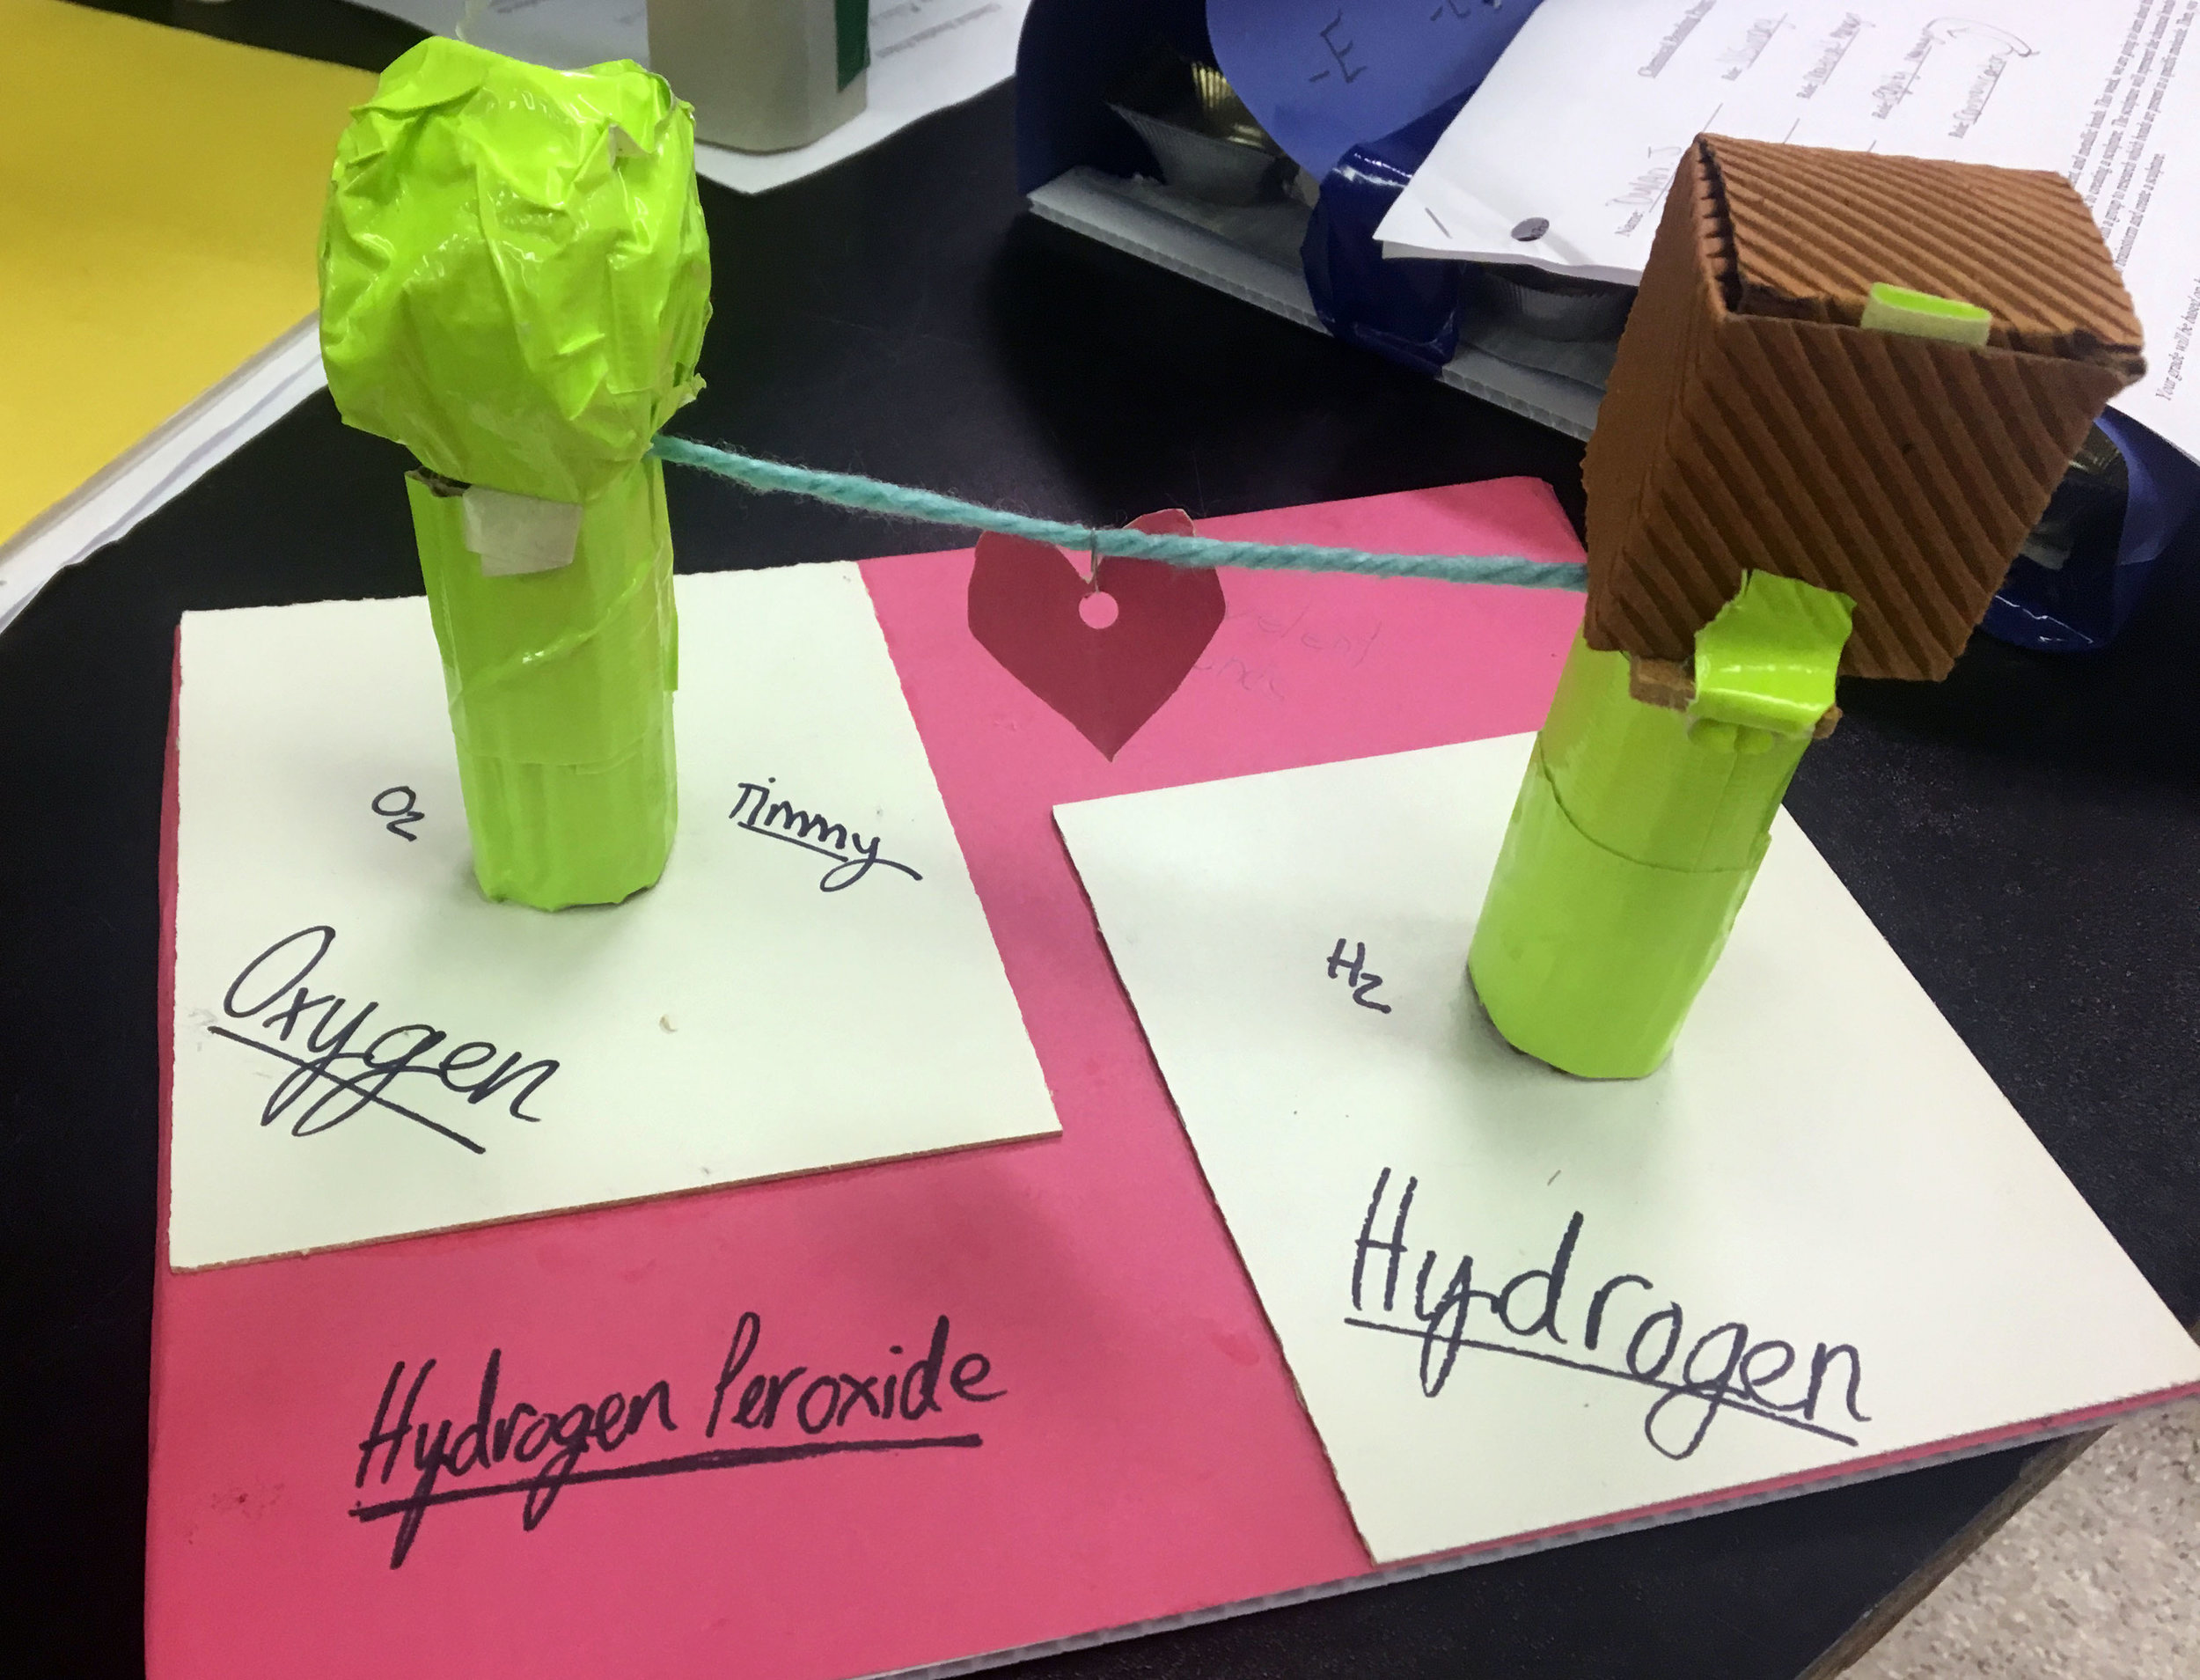 Students used recycled materials to create a sculpture representing the chemical bonds present in hydrogen peroxide.